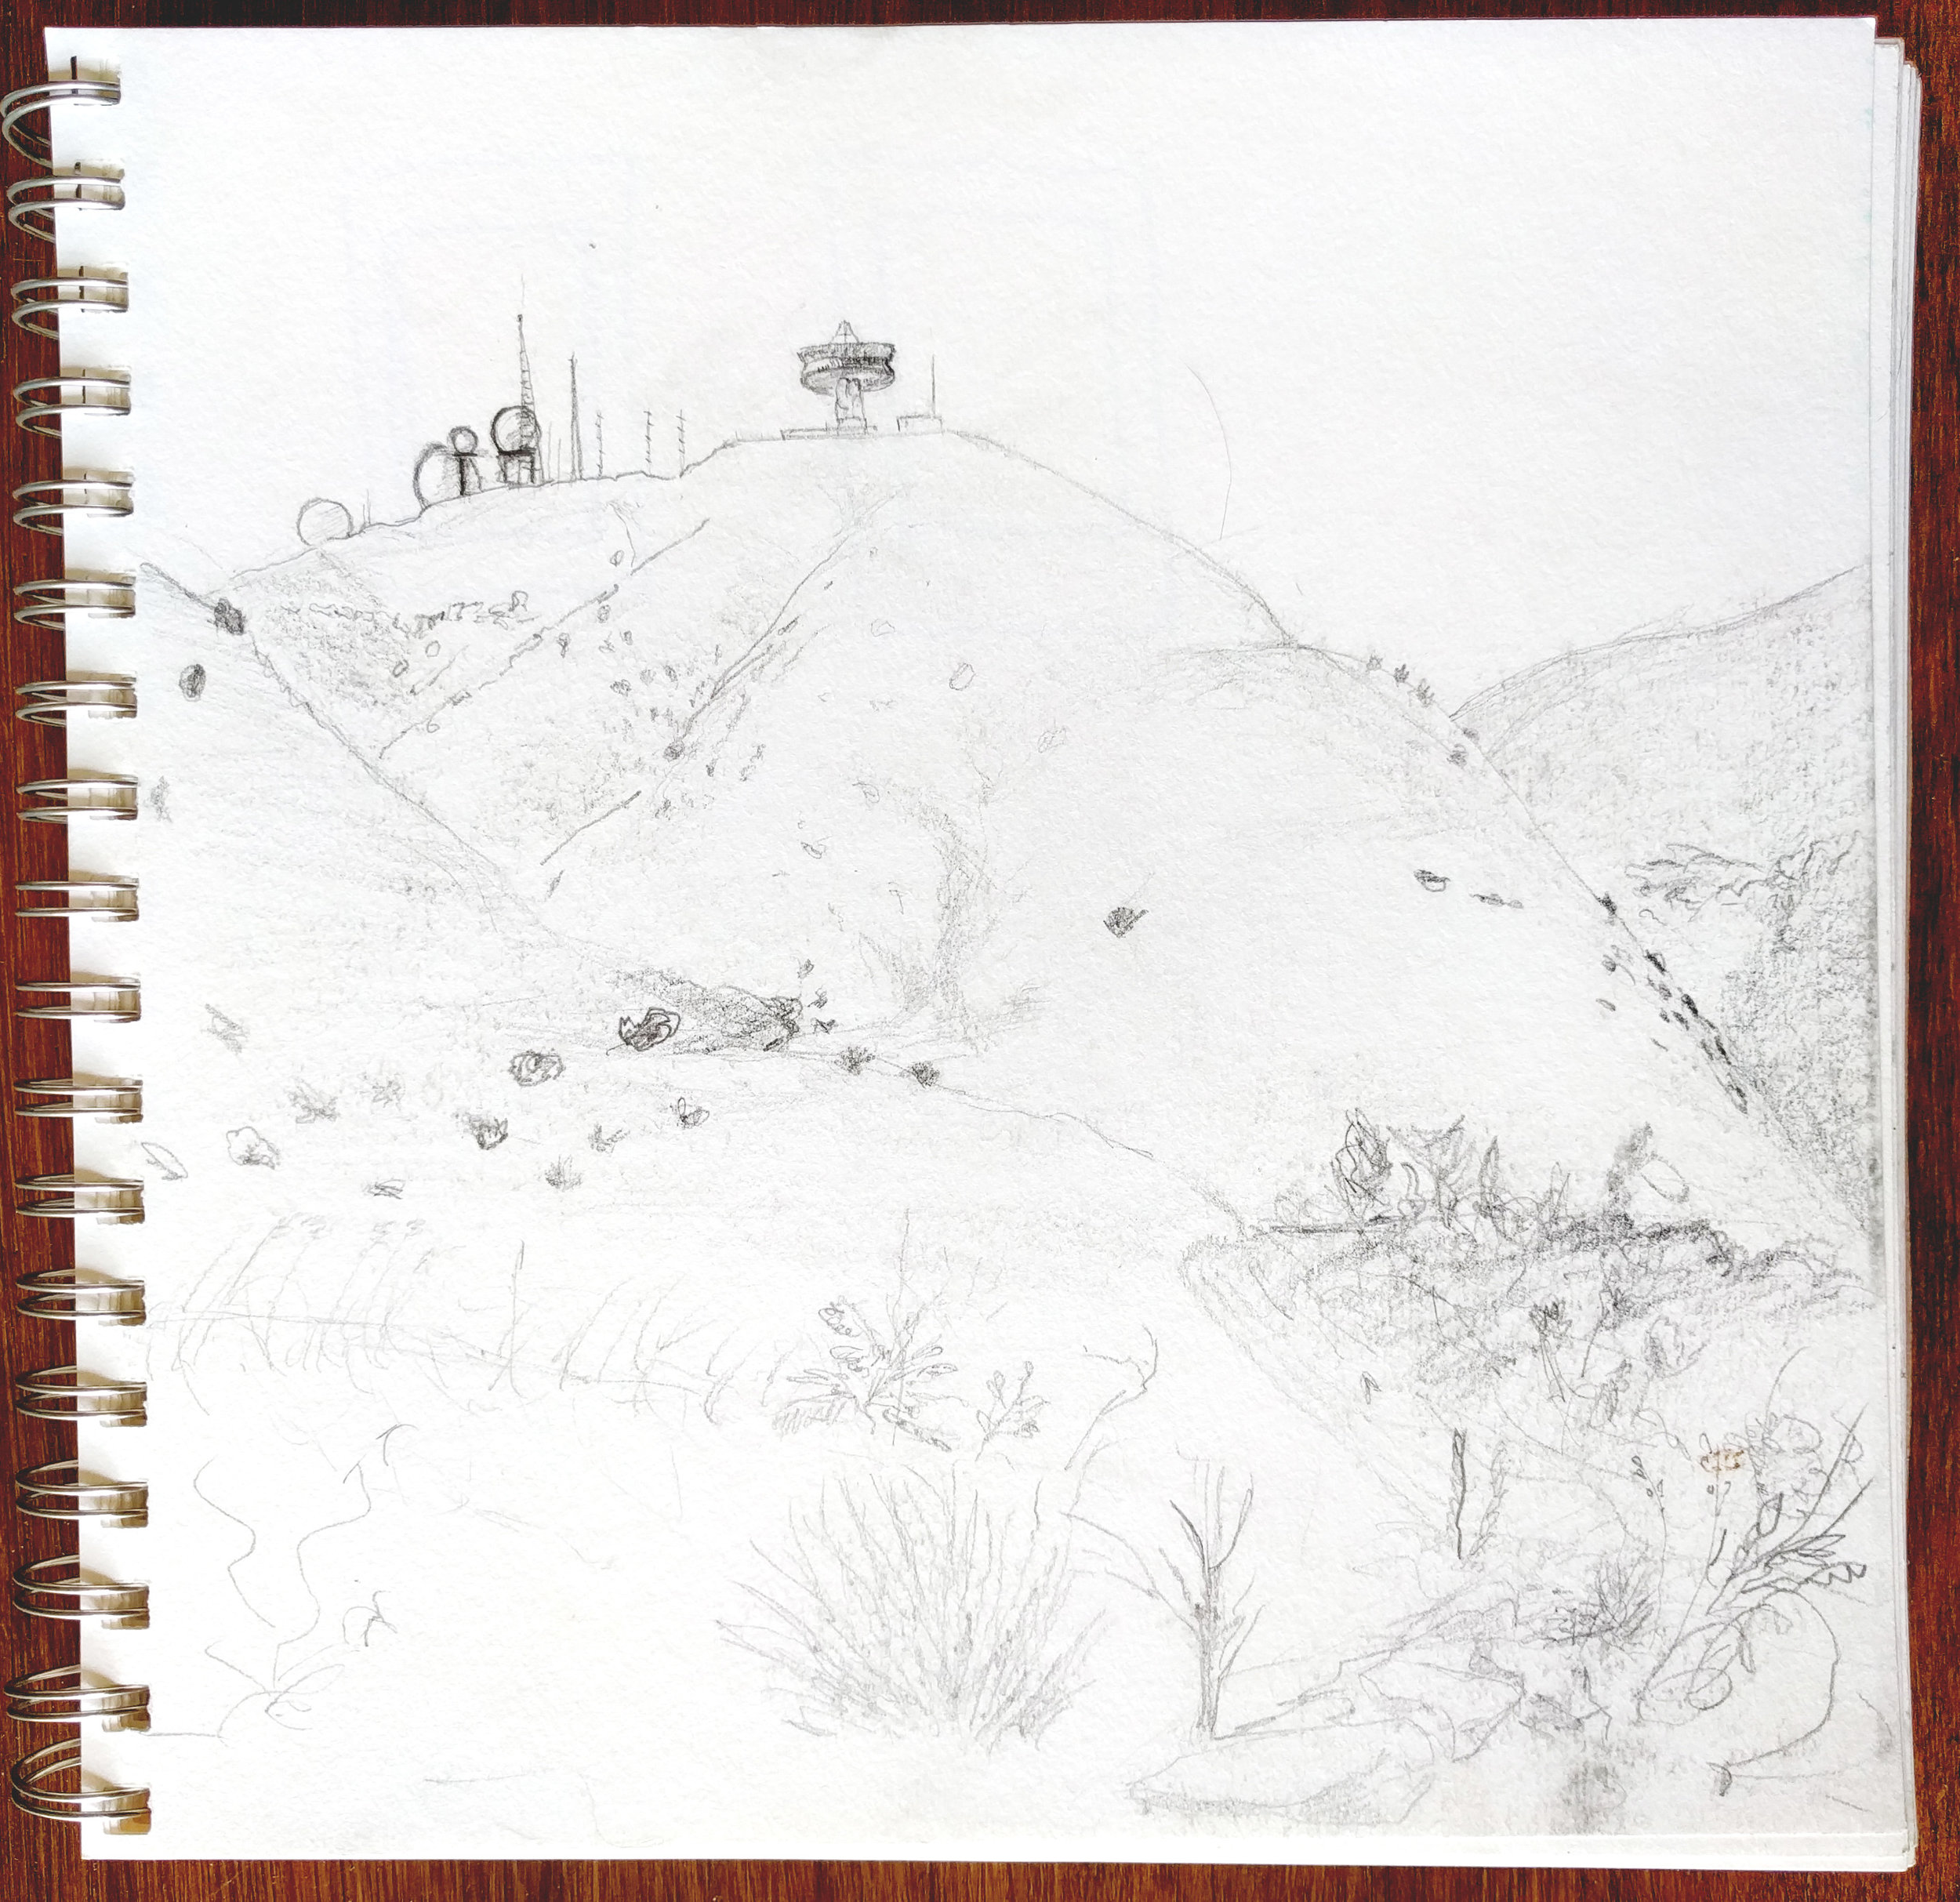 Conor Collins | Sketch of Laguna Peak Tracking Station, 2016 | Pencil on paper